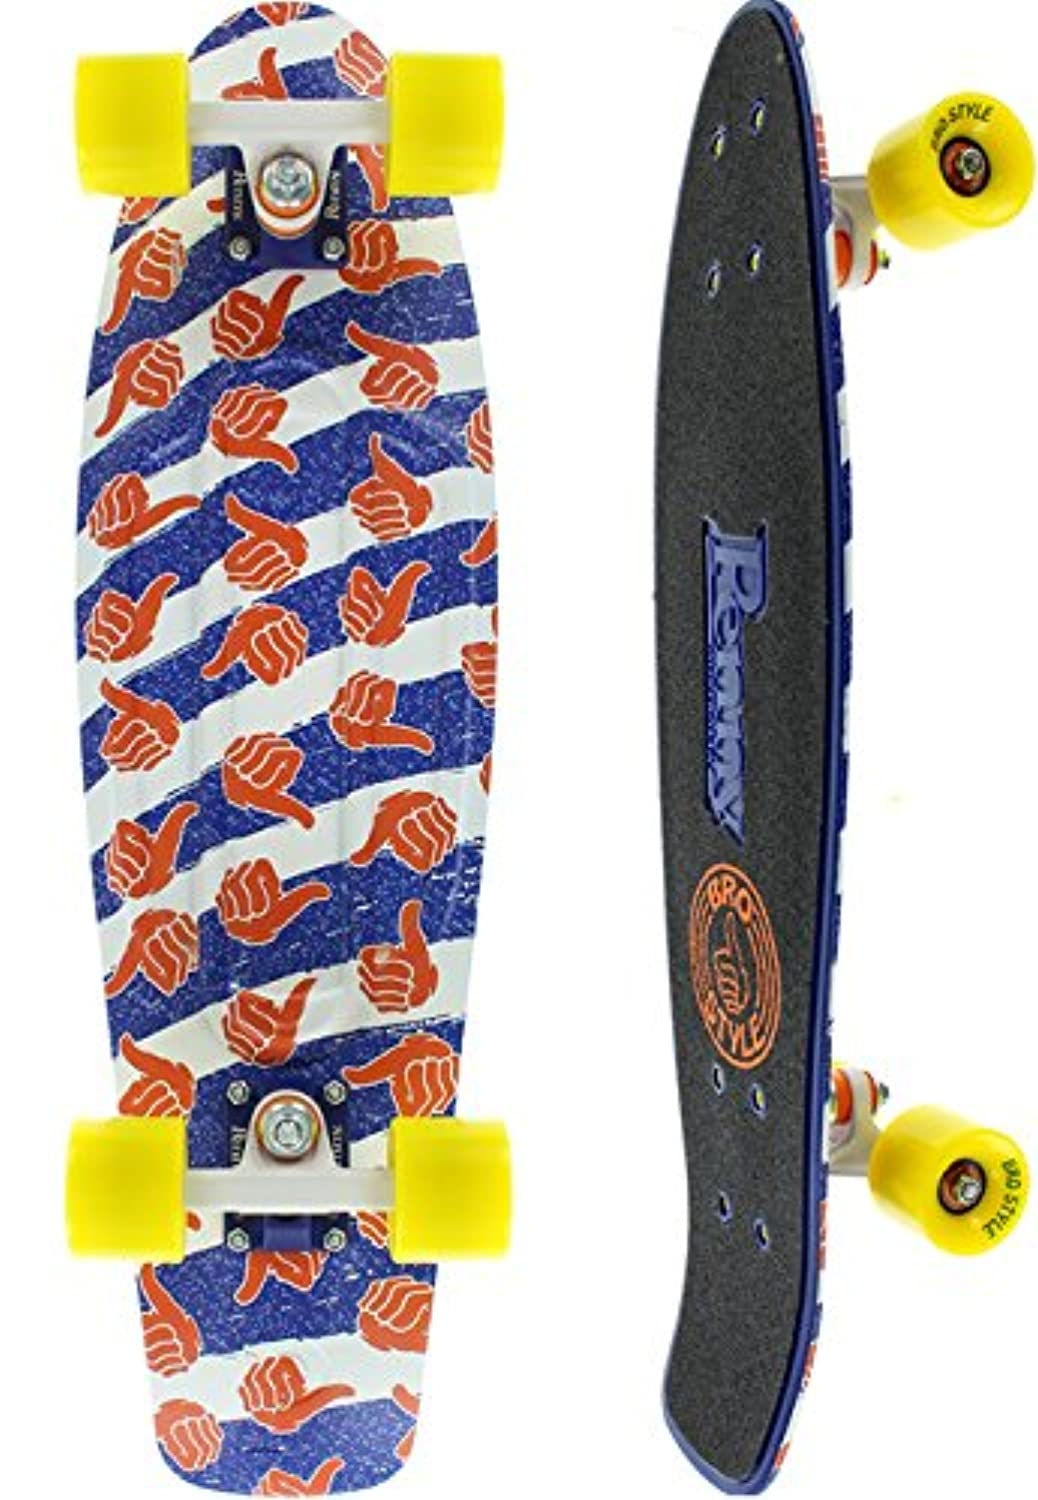 Penny Limited Edition Nickel Complete Skateboard, Bro Style, 27